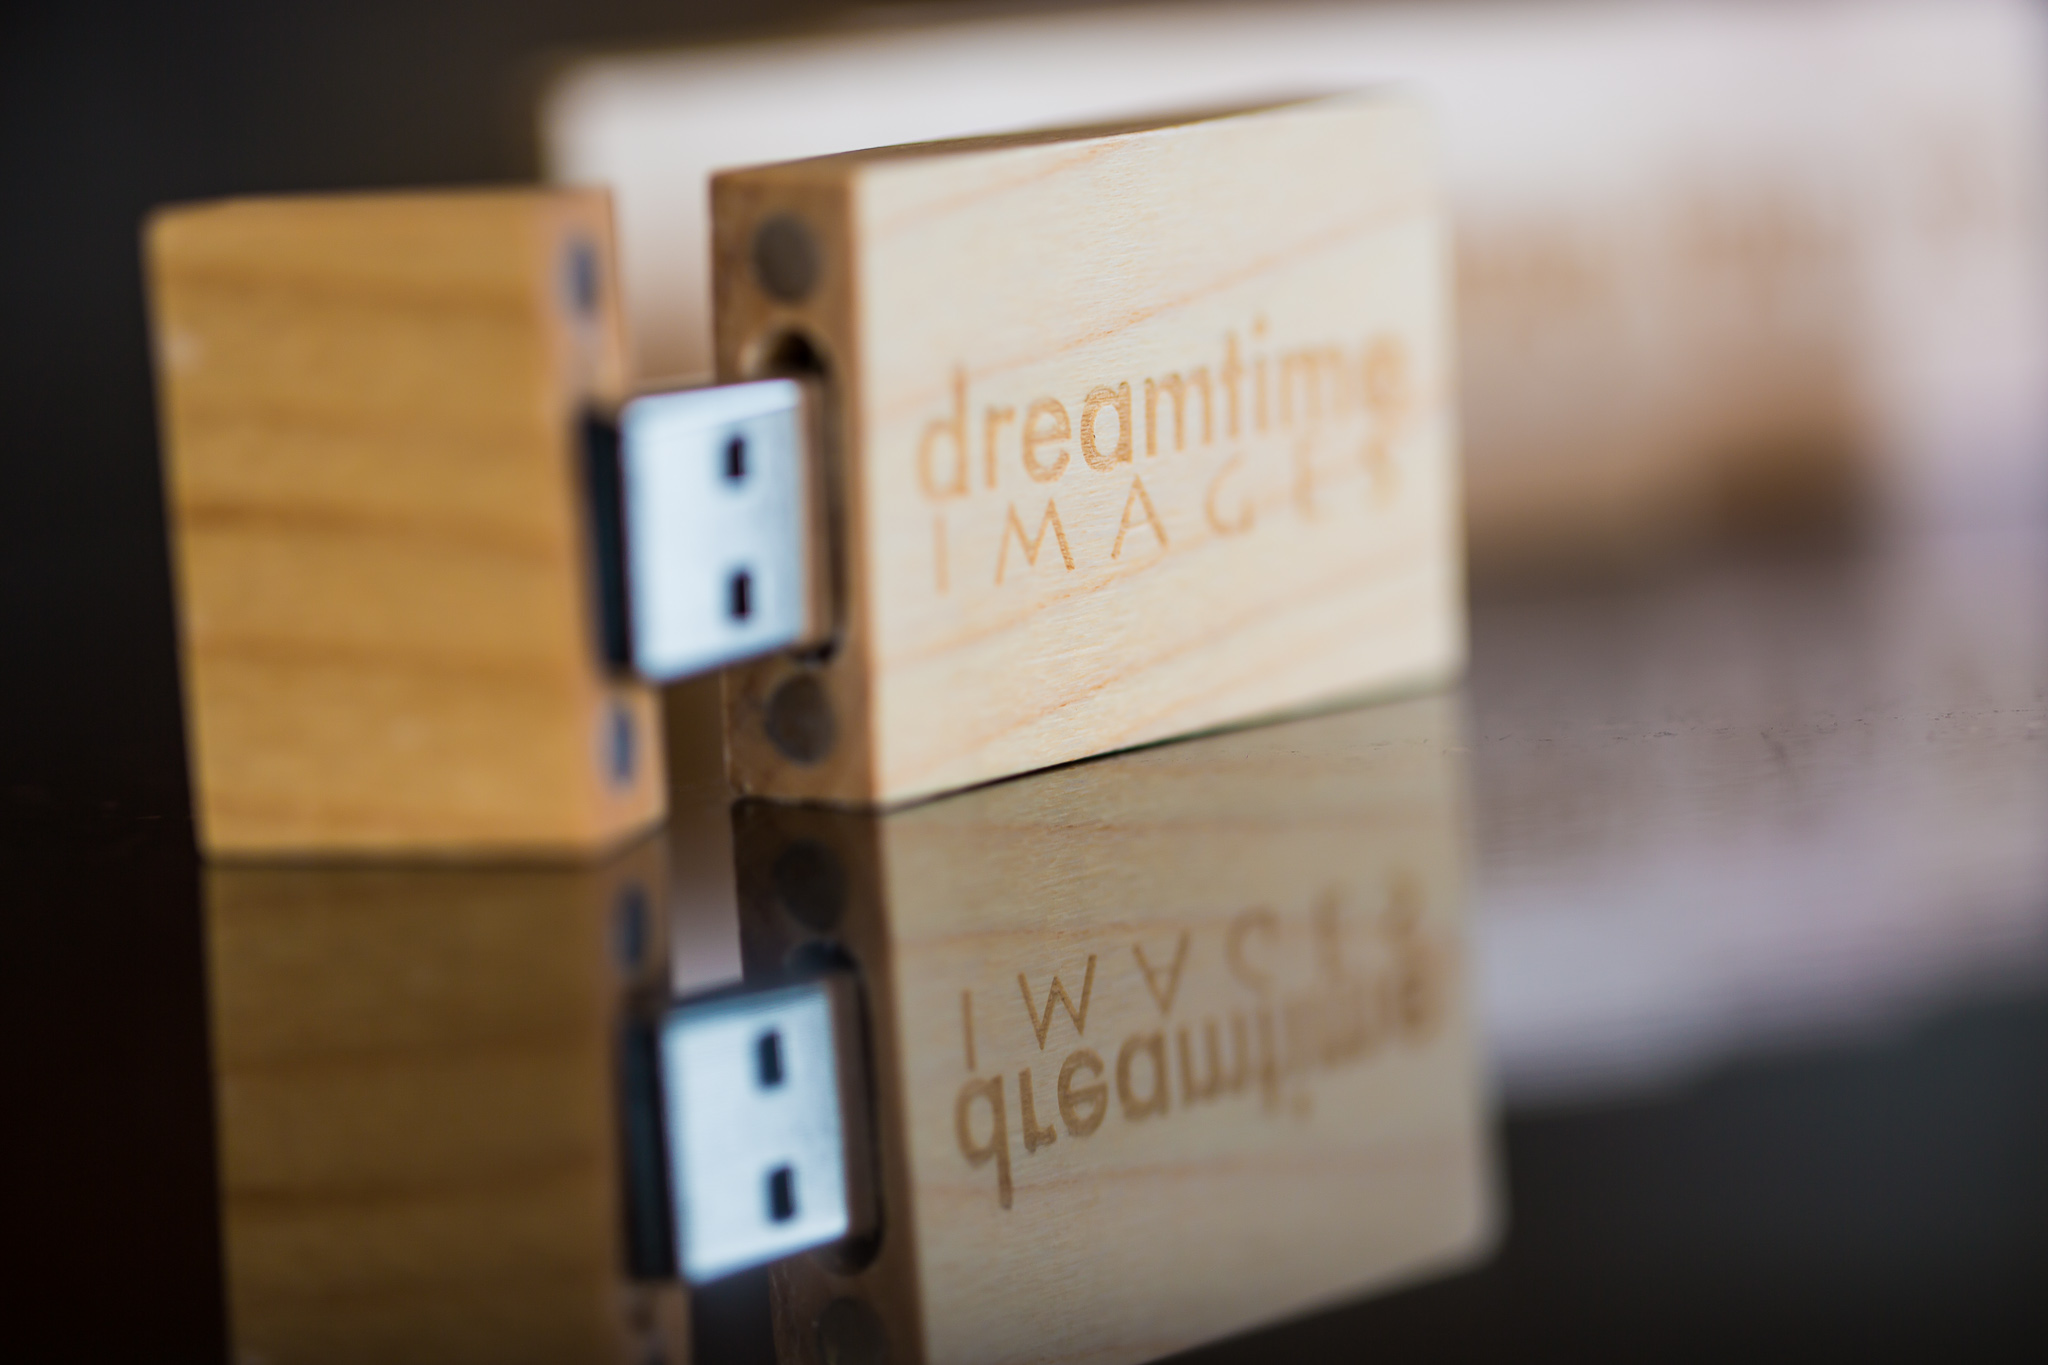 USB memory drive for photographers